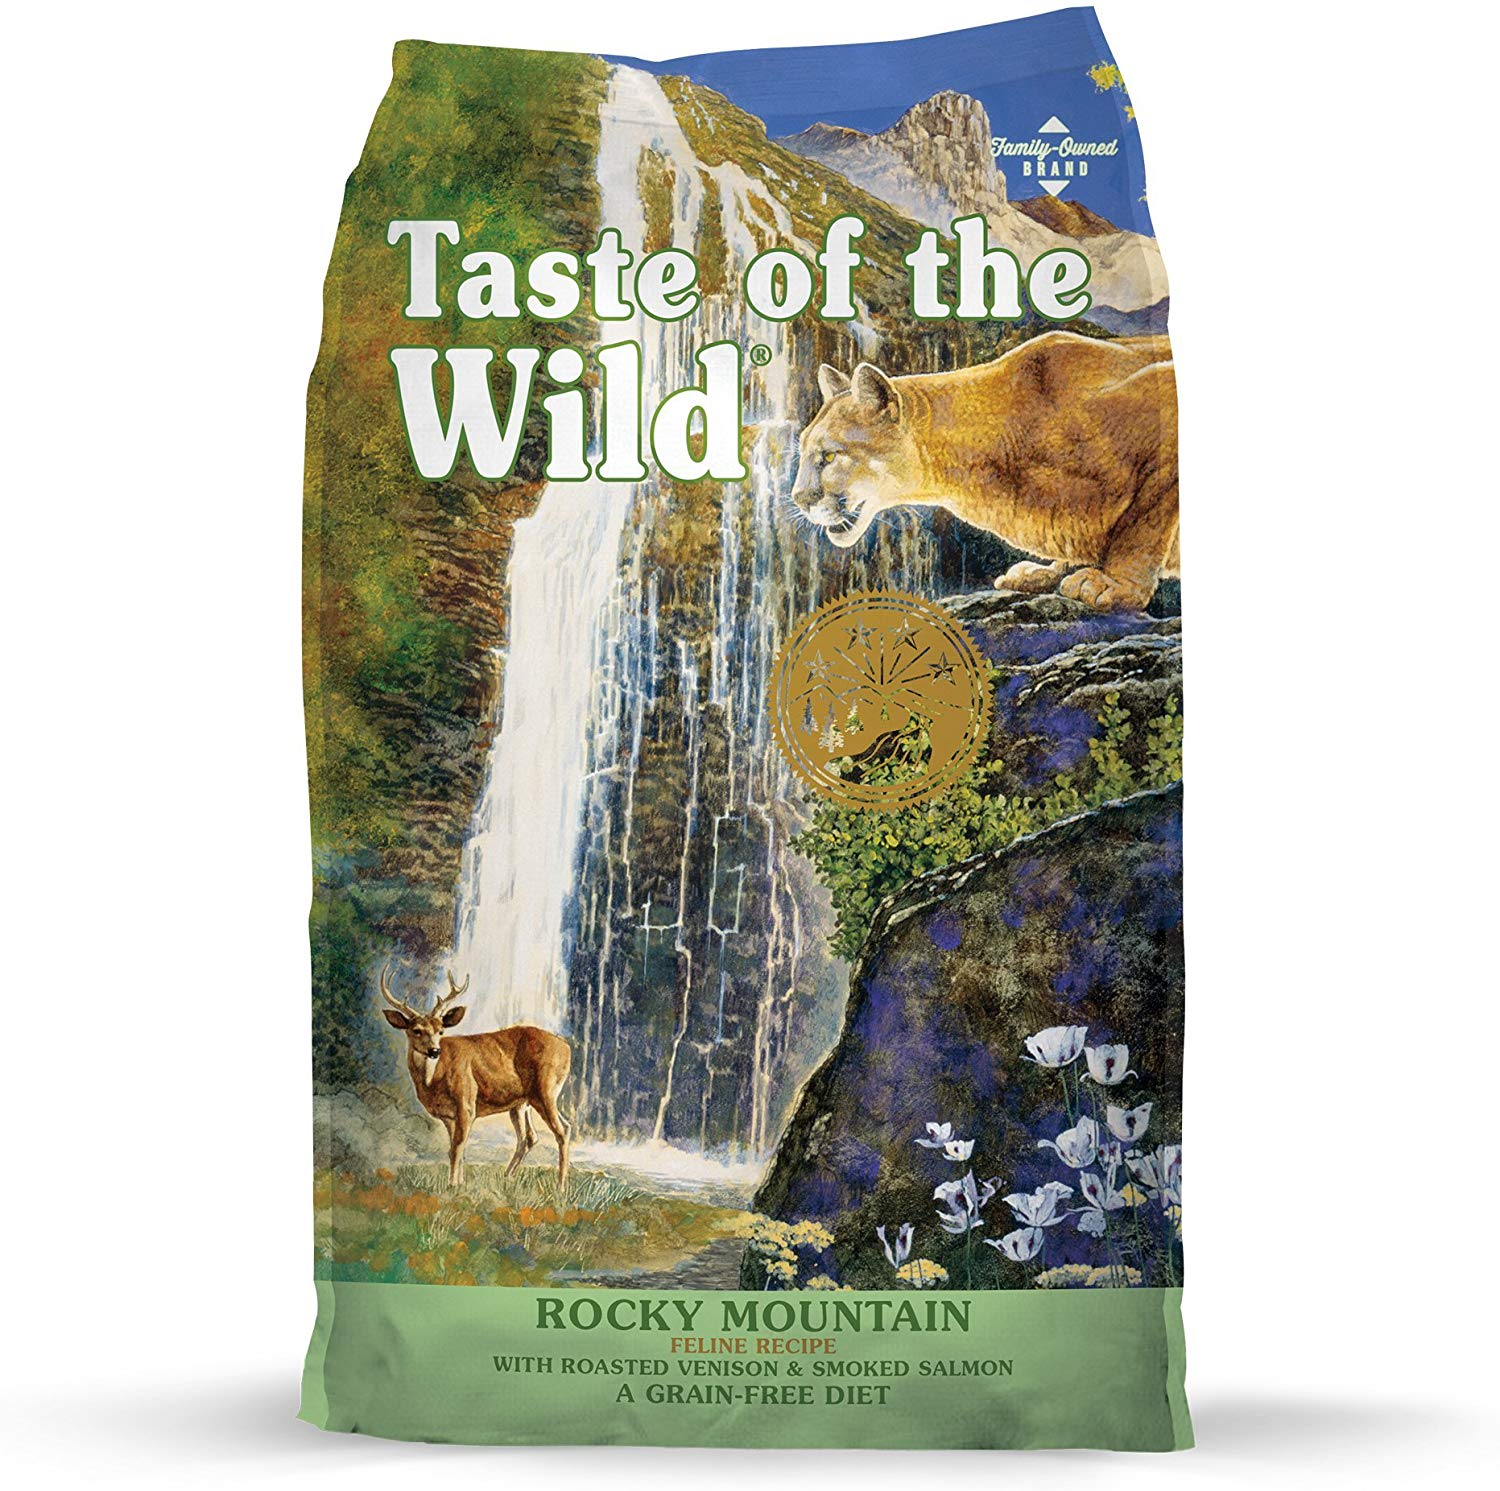 Taste of the Wild for Cats